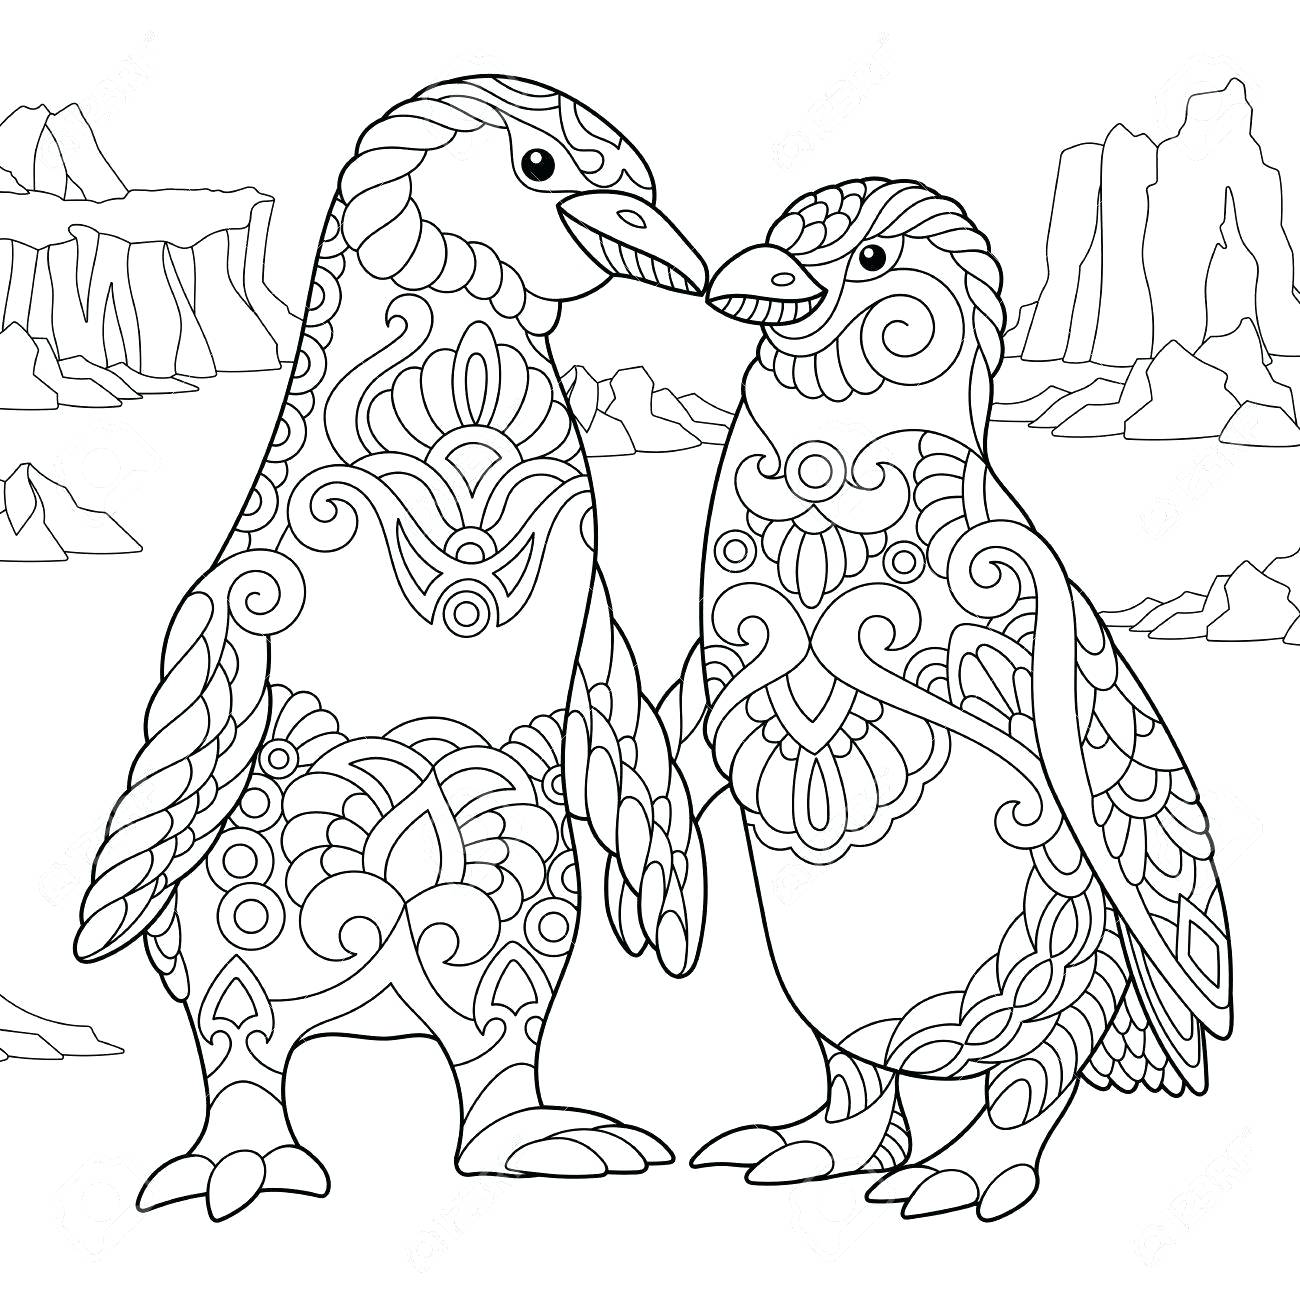 1300x1300 Coloring Lemur Coloring Page Mammals Aye Pages Face. Lemur